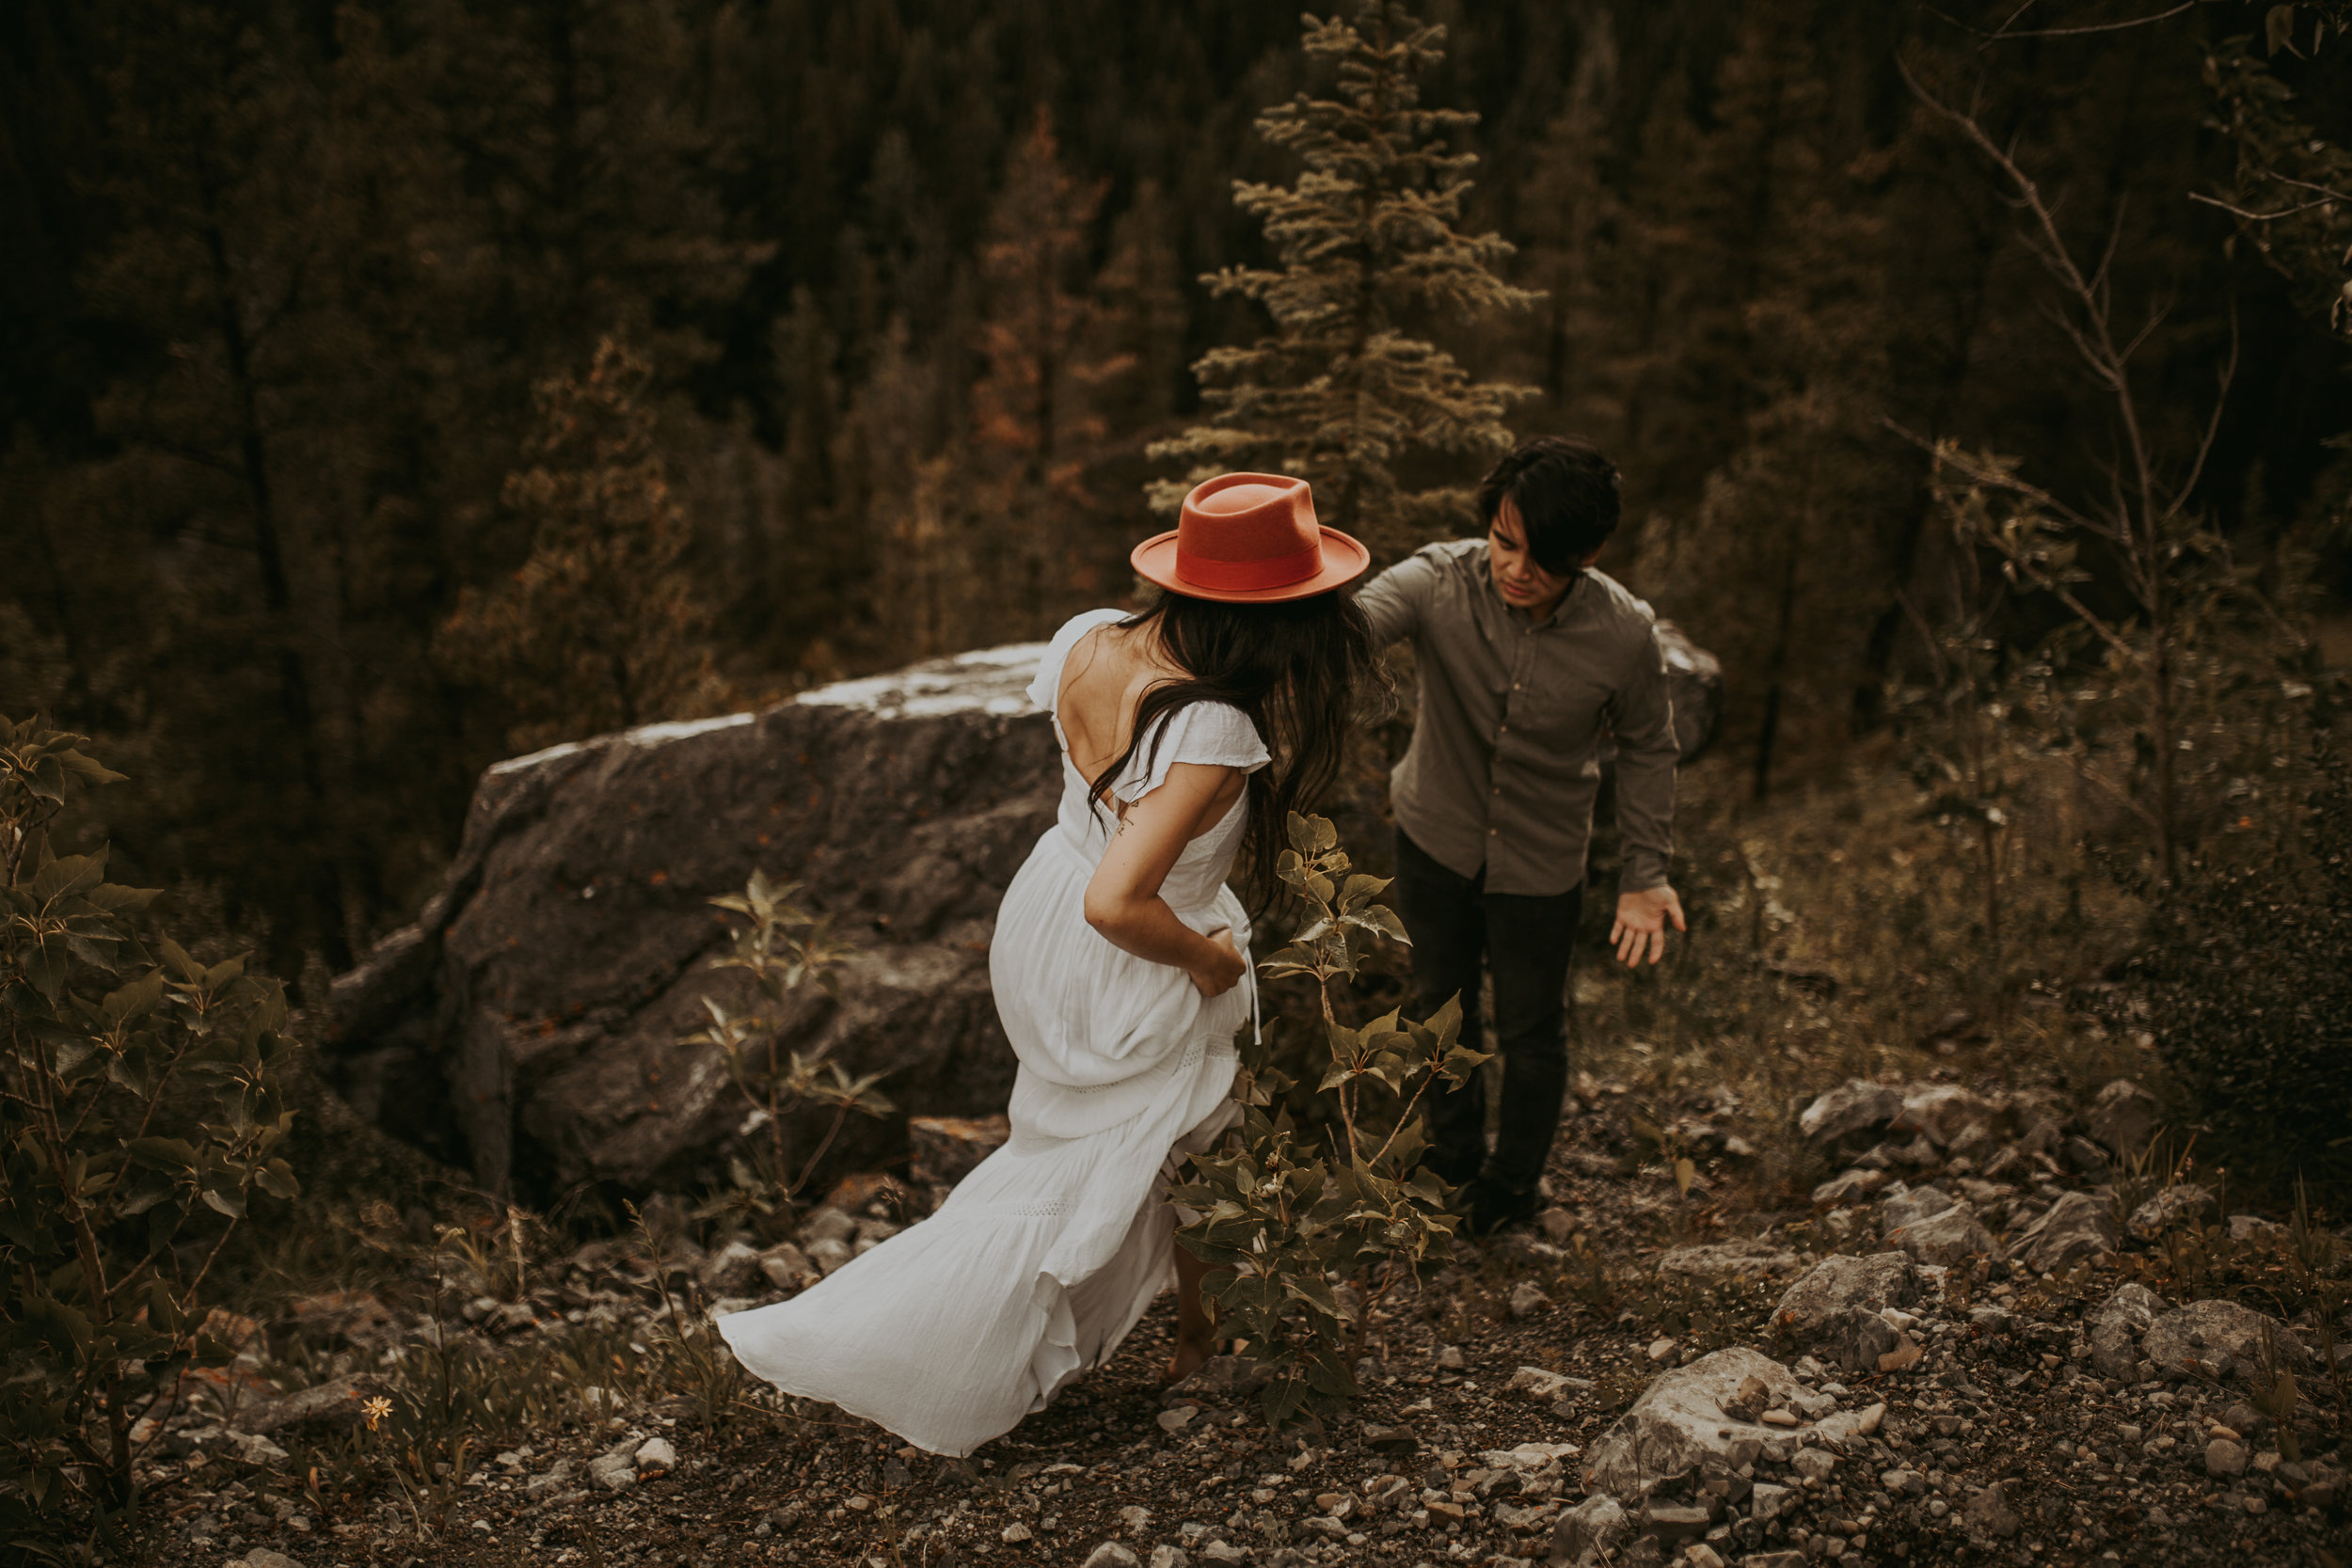 Banff Engagement session, Banff photographer, Banff elopement, Banff Photography, Italy Elopement. Engagement session inspiration